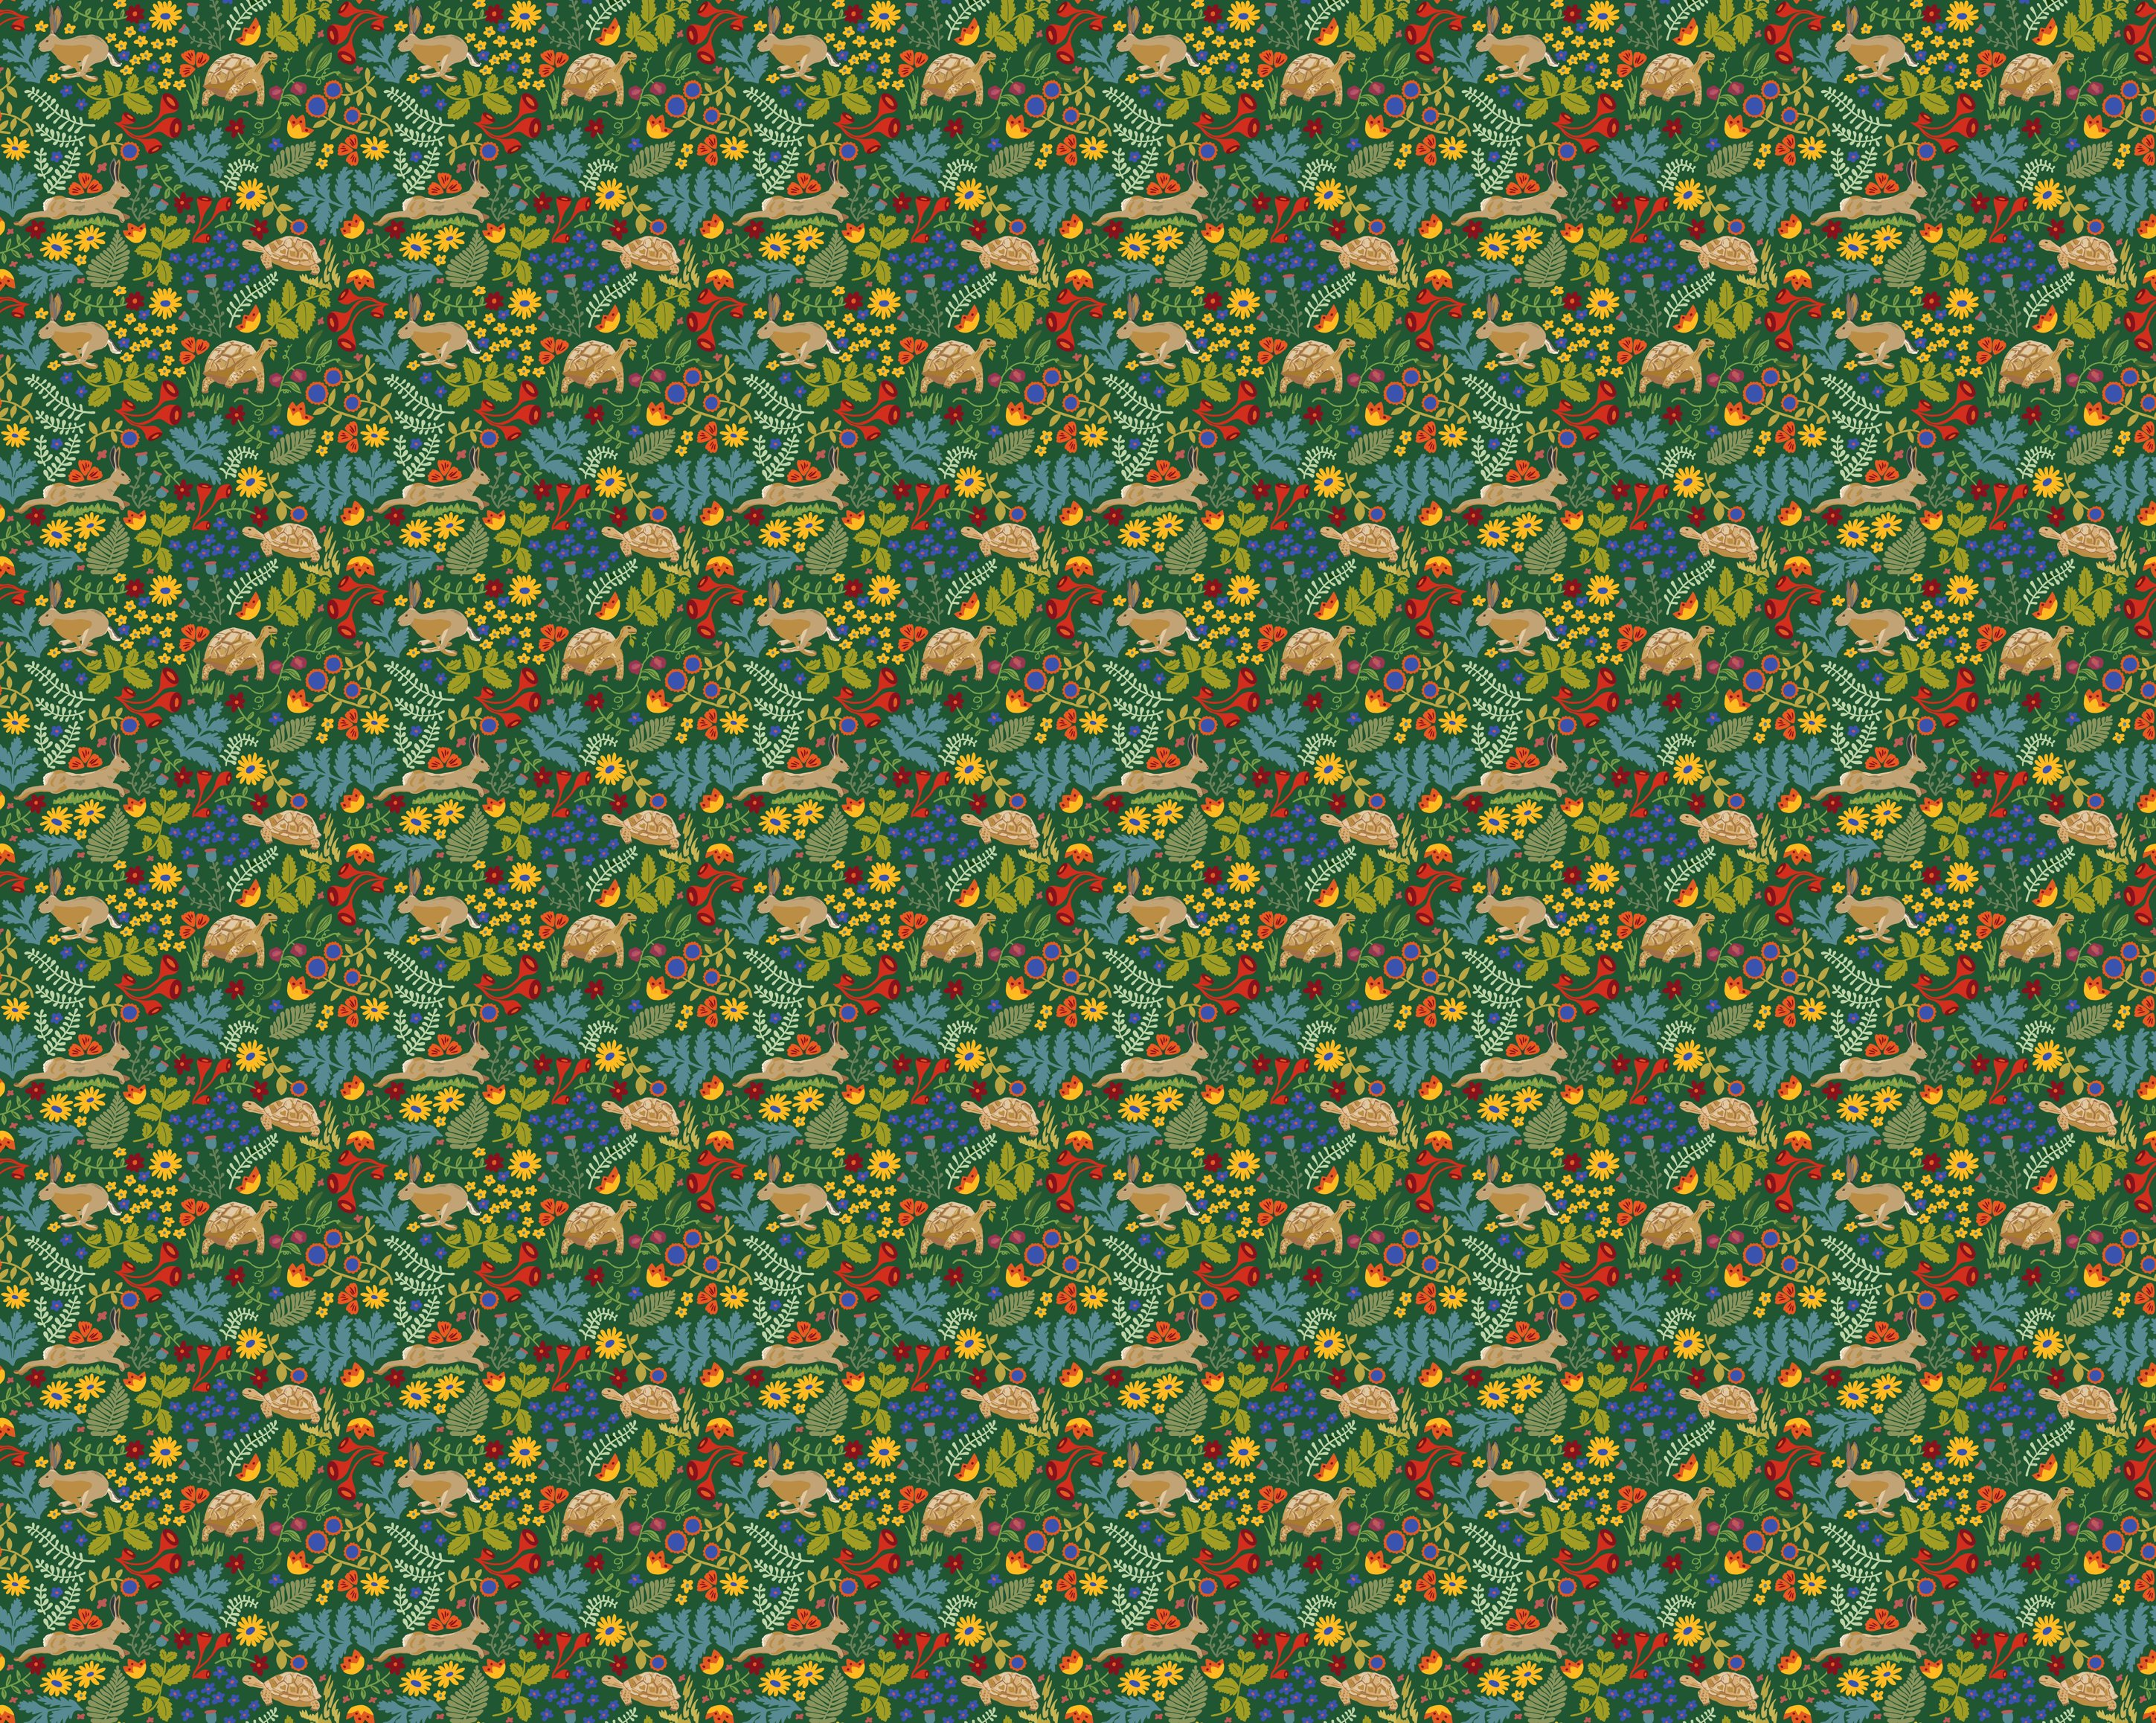 Rrrtortoise_and_hare_repeatspoonflower_shop_preview